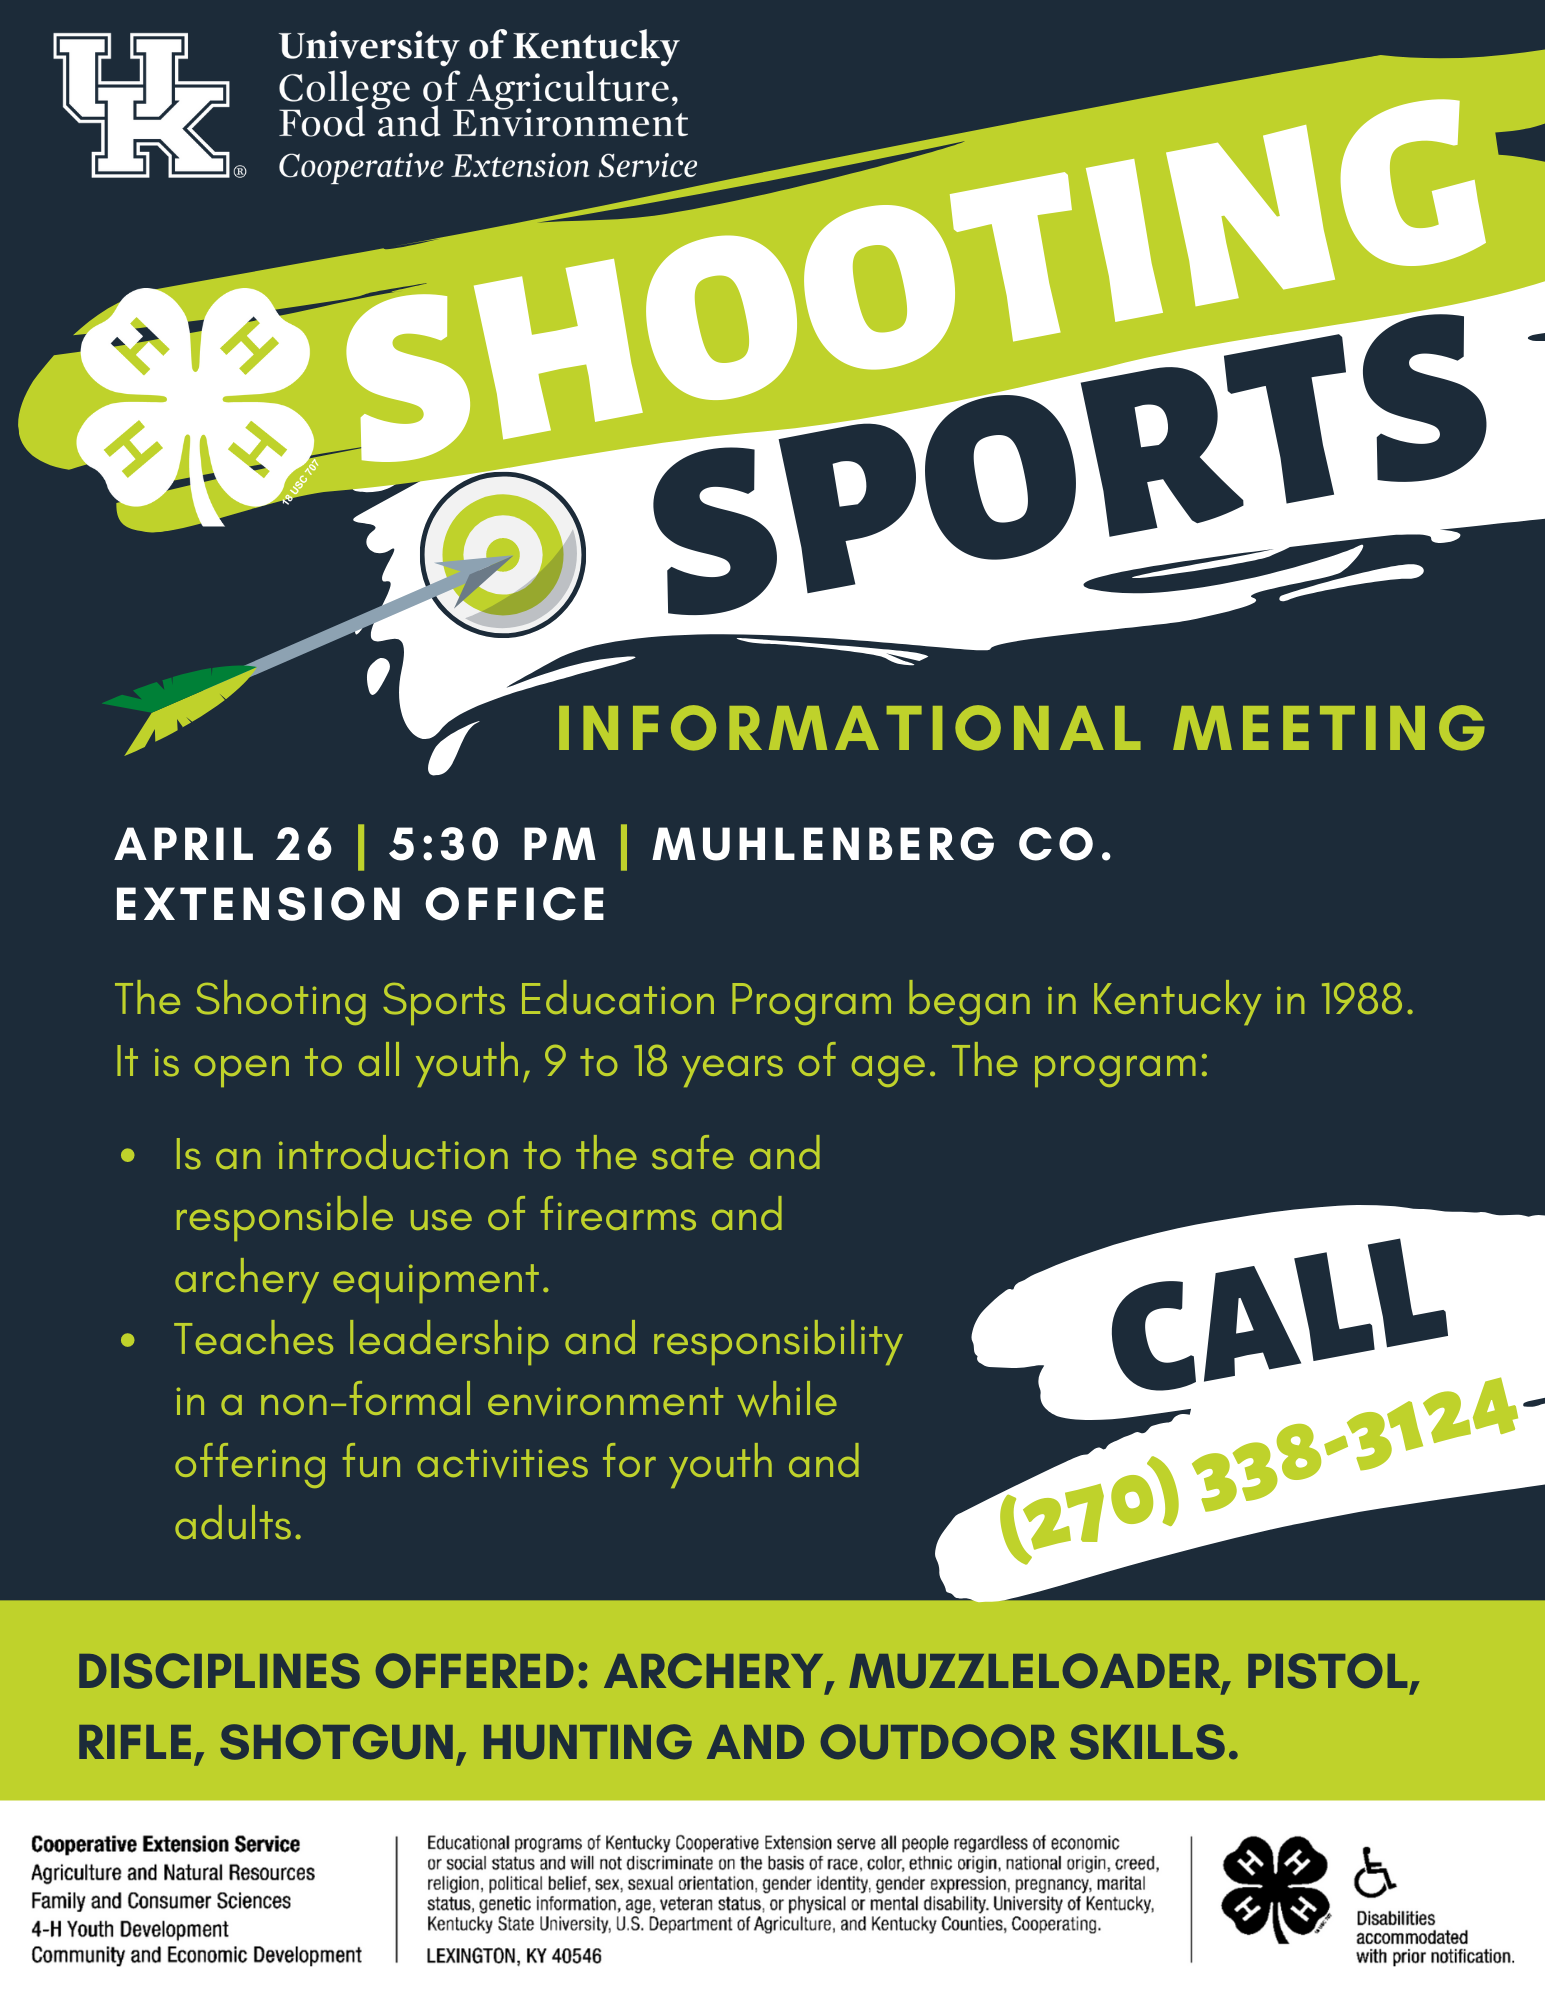 4-H Shooting Sports Informational meeting in-person at the Extension Office on April 26 at 5:30 PM. Attend to find out all about Shooting Sports and how your child can join. This group is for youth ages 9 to 18.